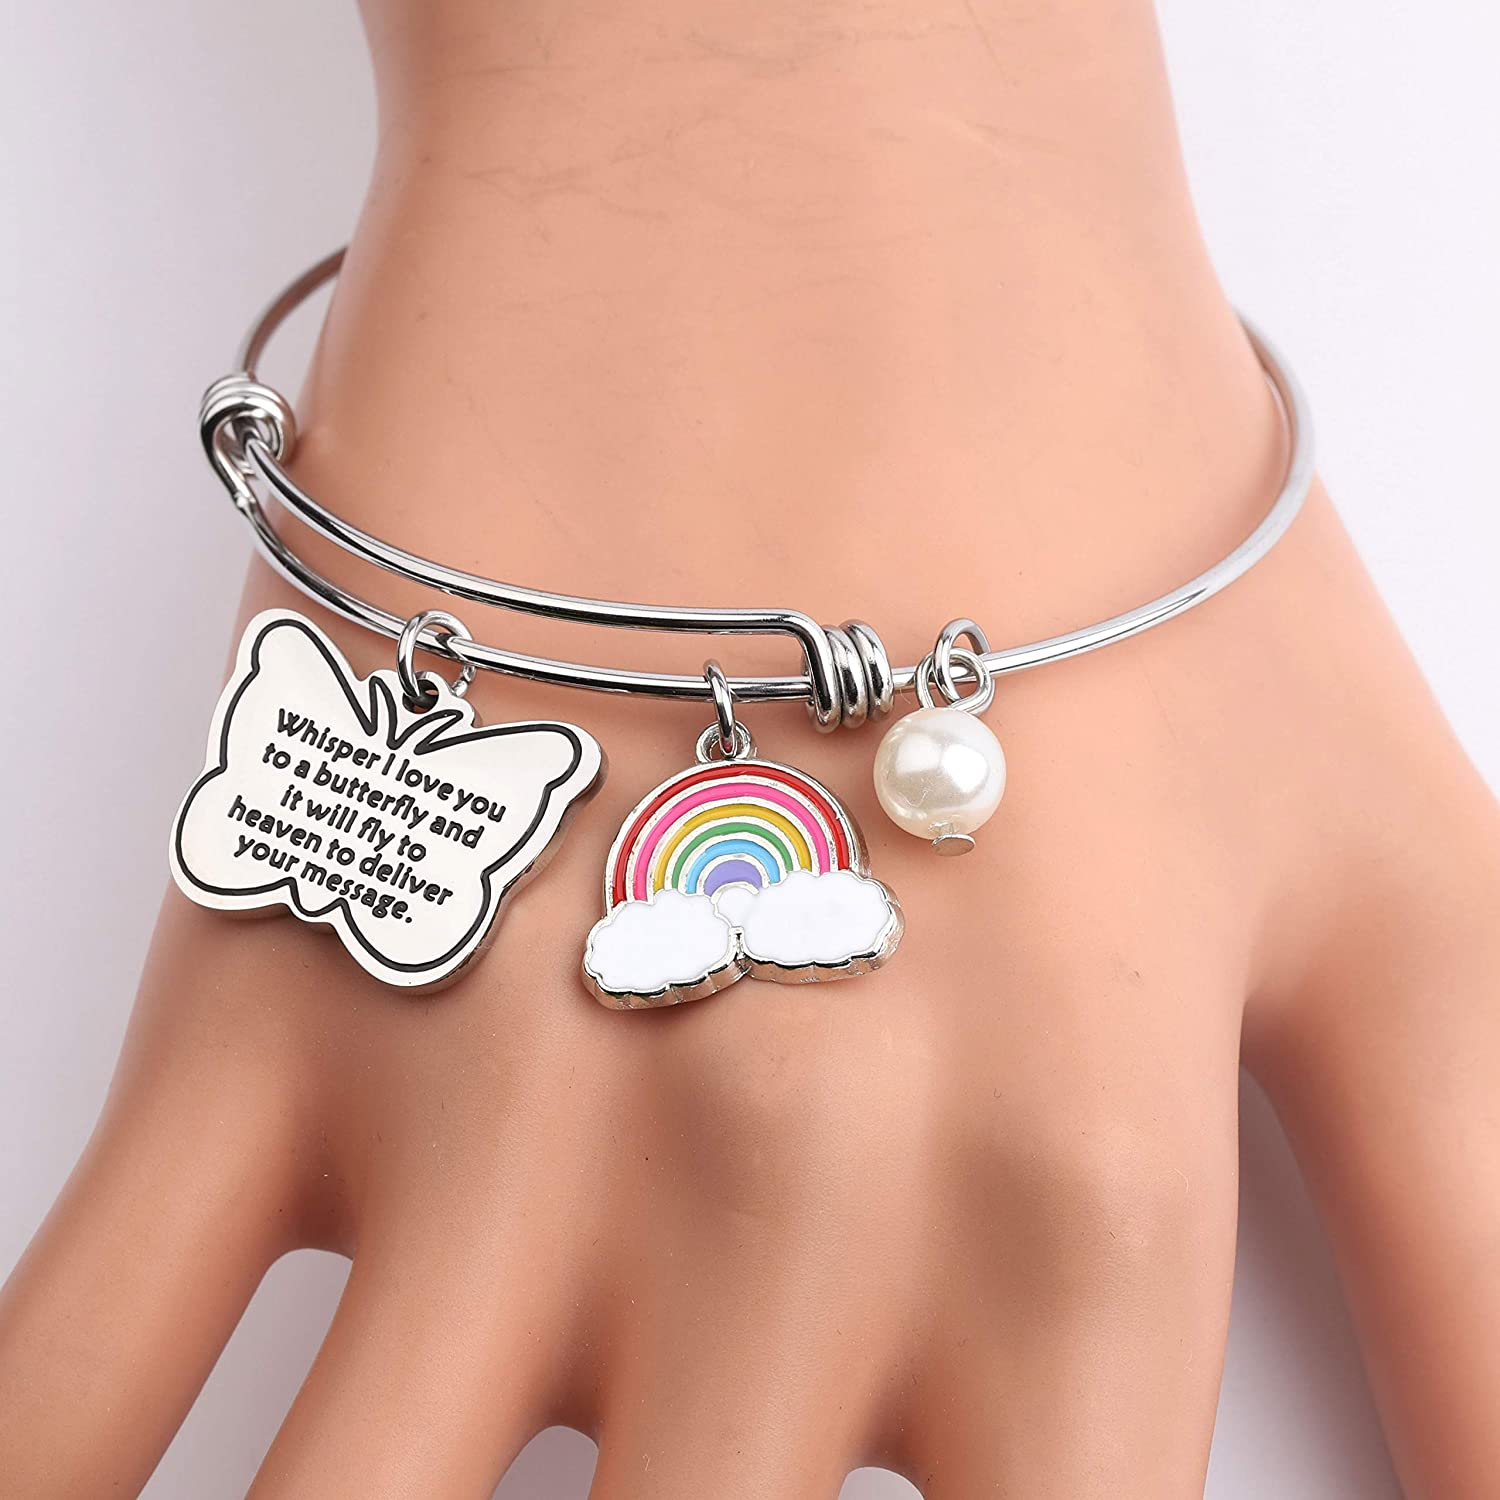 KUIYAI Butterfly Charm Bracelet Whisper I Love You to a Butterfly Memorial Bangle